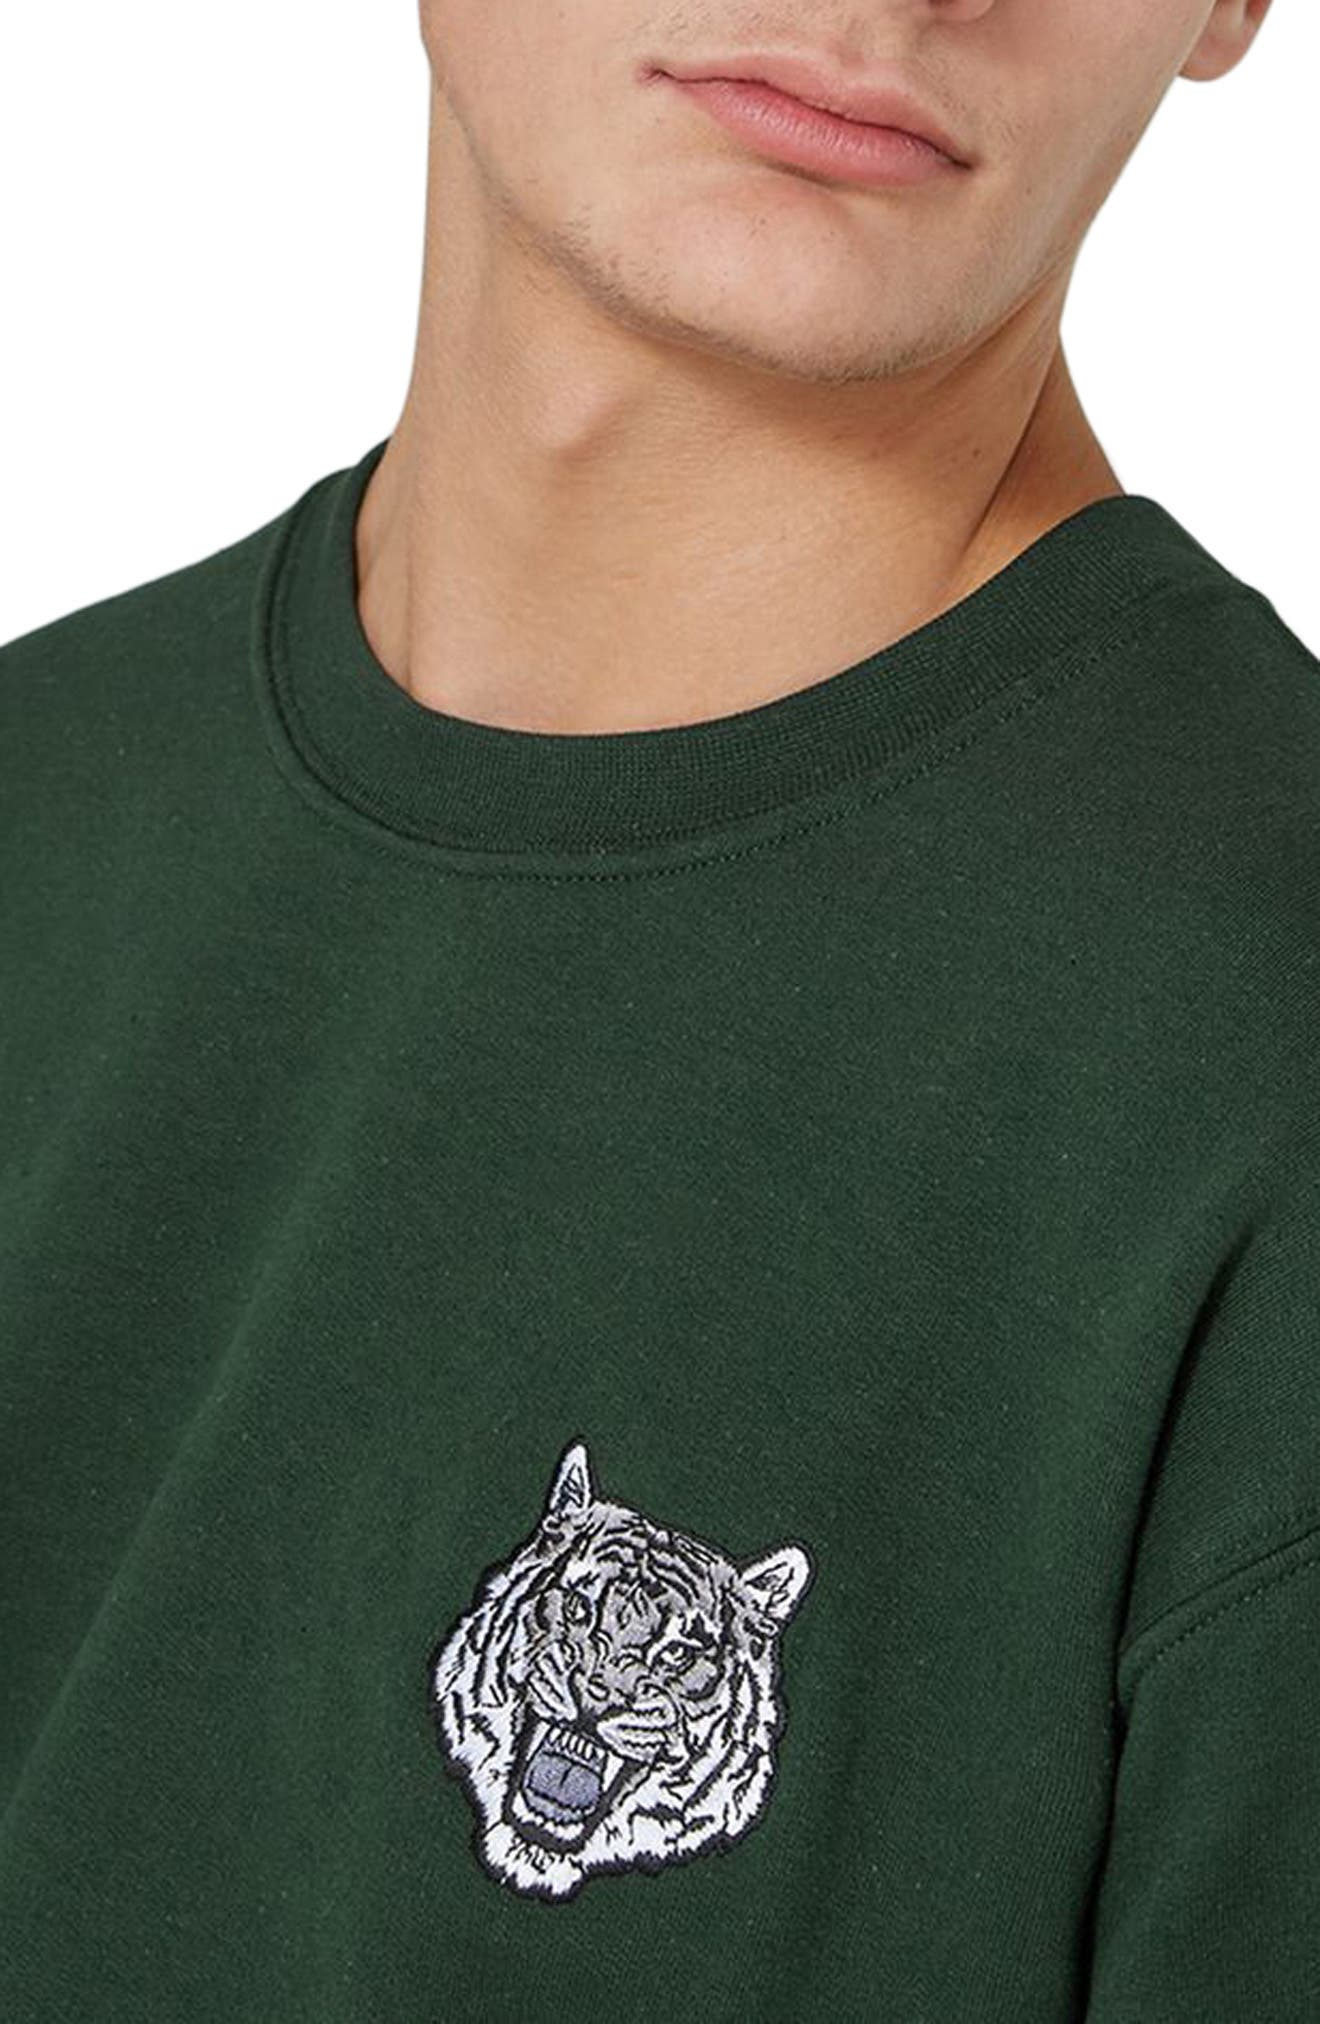 Tiger Patch Sweatshirt,                             Alternate thumbnail 3, color,                             300